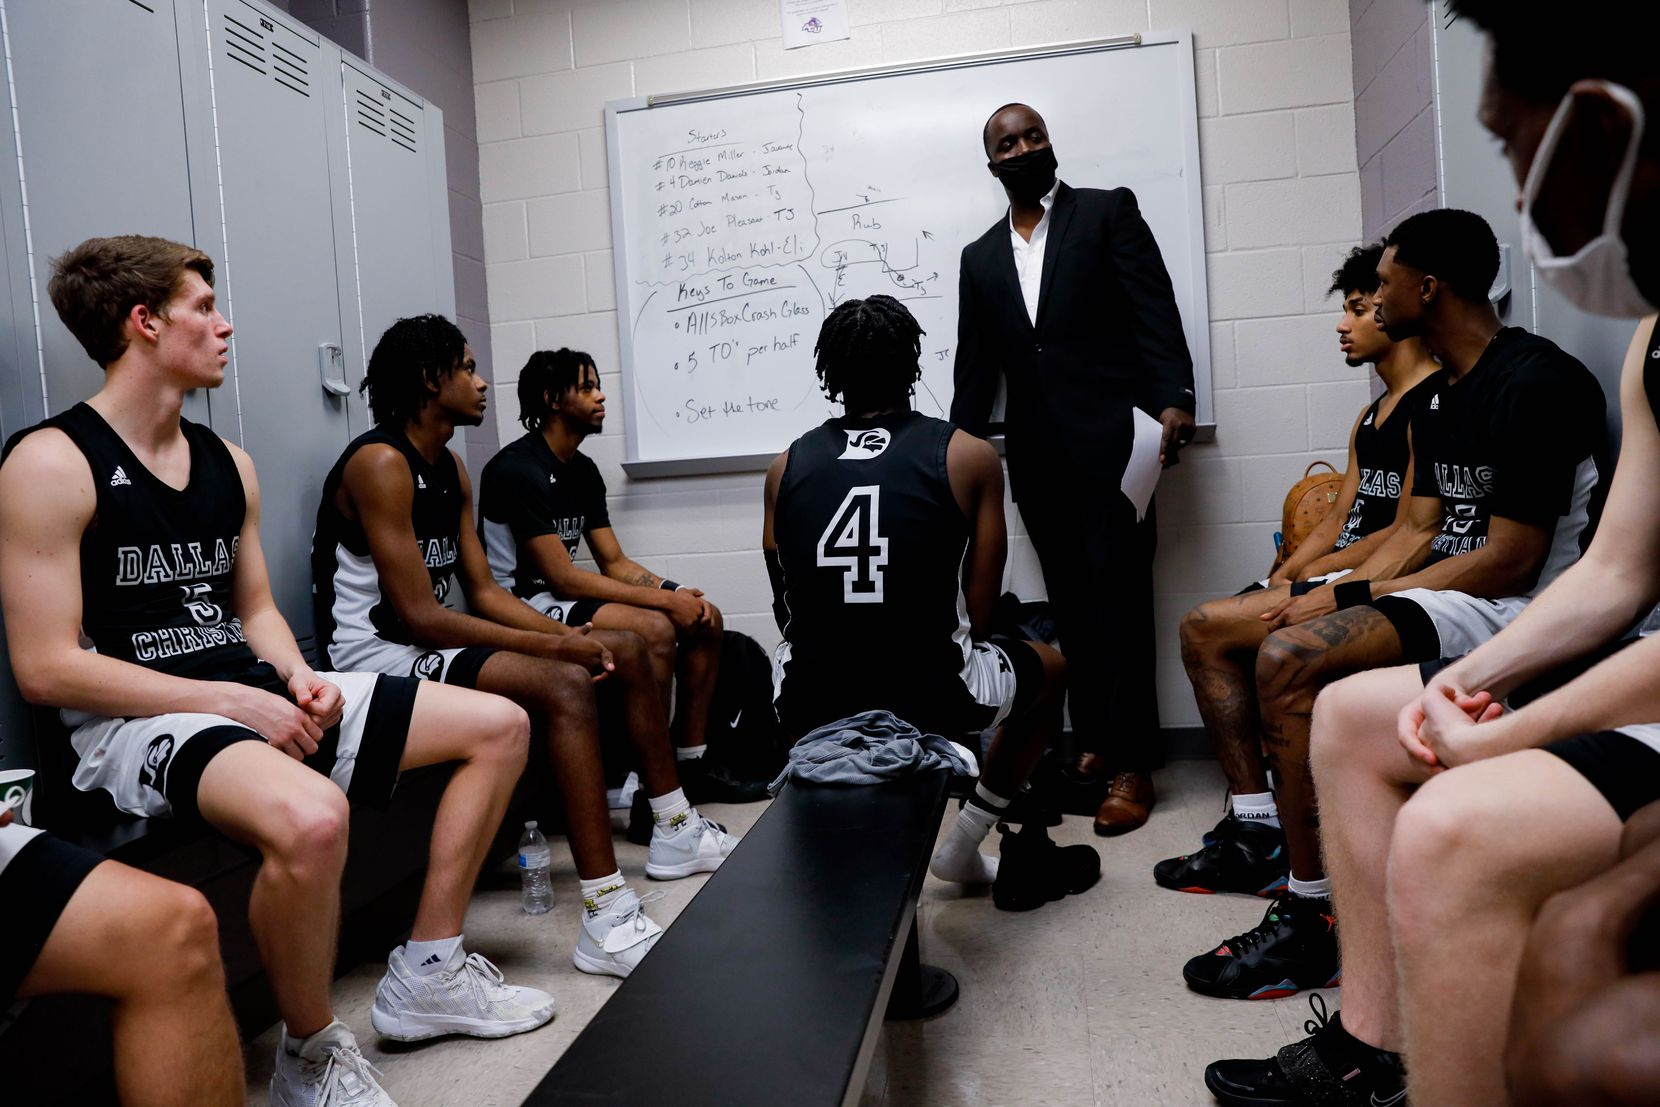 Dallas Christian College basketball players listen to coach Dwight Coleman in the locker room during halftime against Abilene Christian University, a NCAA Division I team, in Abilene on Tuesday, Dec. 29, 2020. Dallas Christian trailed ACU 54-21 at halftime. (Juan Figueroa/ The Dallas Morning News)